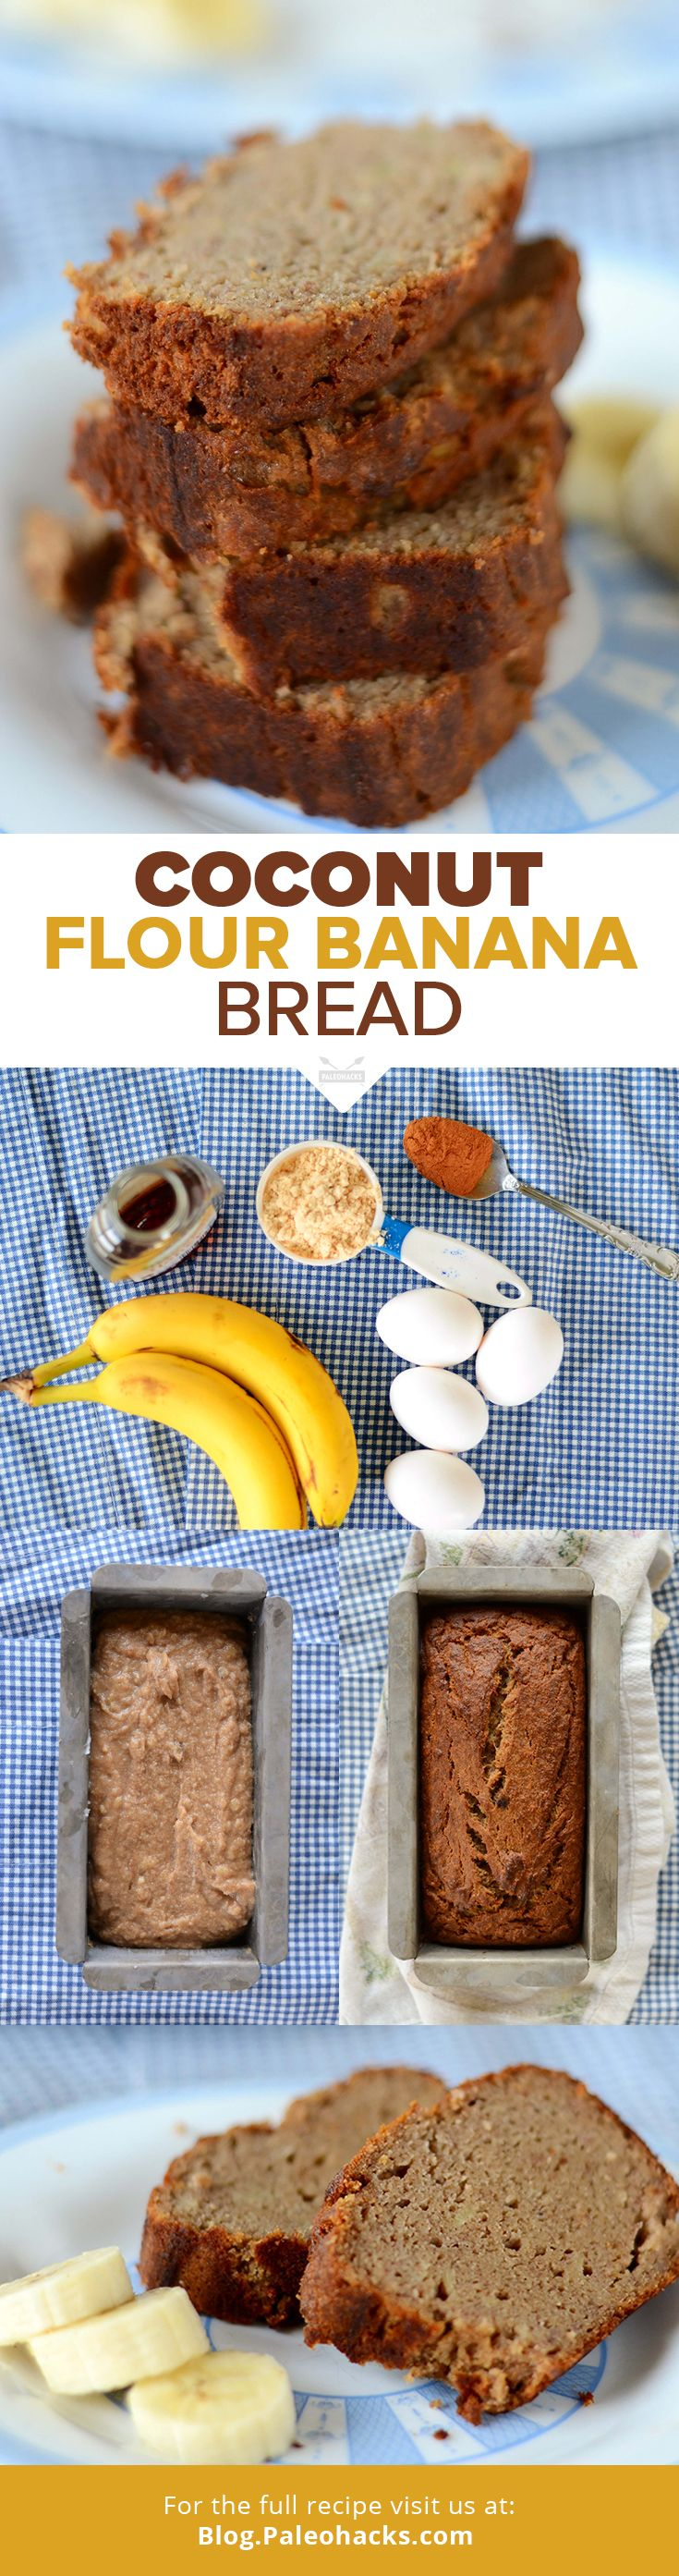 Want a super easy treat that uses up those ripening bananas on your counter? Try this recipe for Paleo Banana Bread. It bakes up soft, moist, fluffy, and sweet!  http://www.my-paleo.com